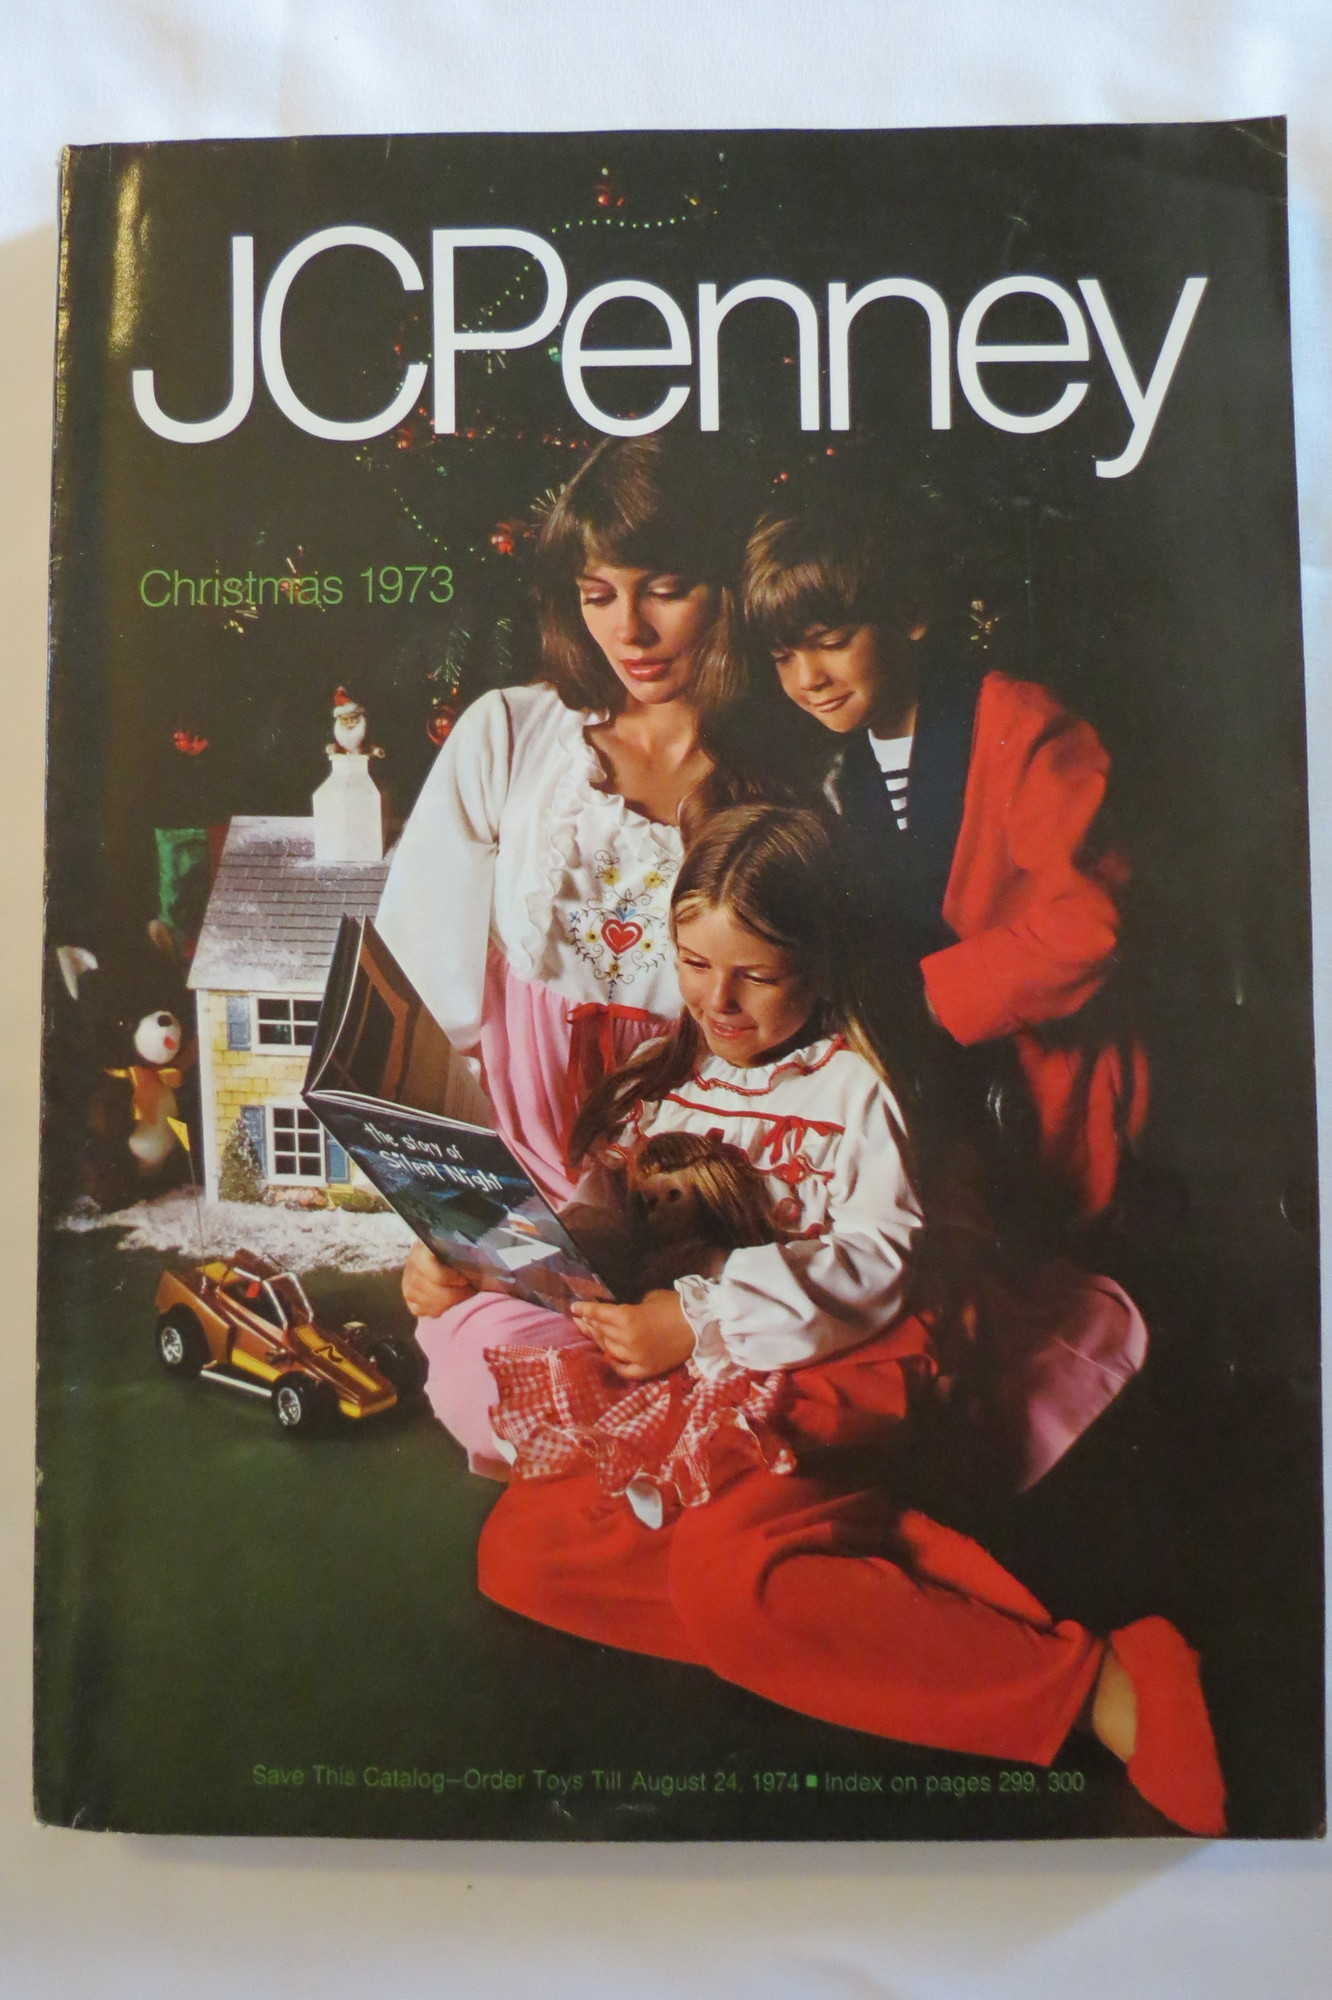 JCPENNEY CHRISTMAS 1973 CATALOG   [Very Good]